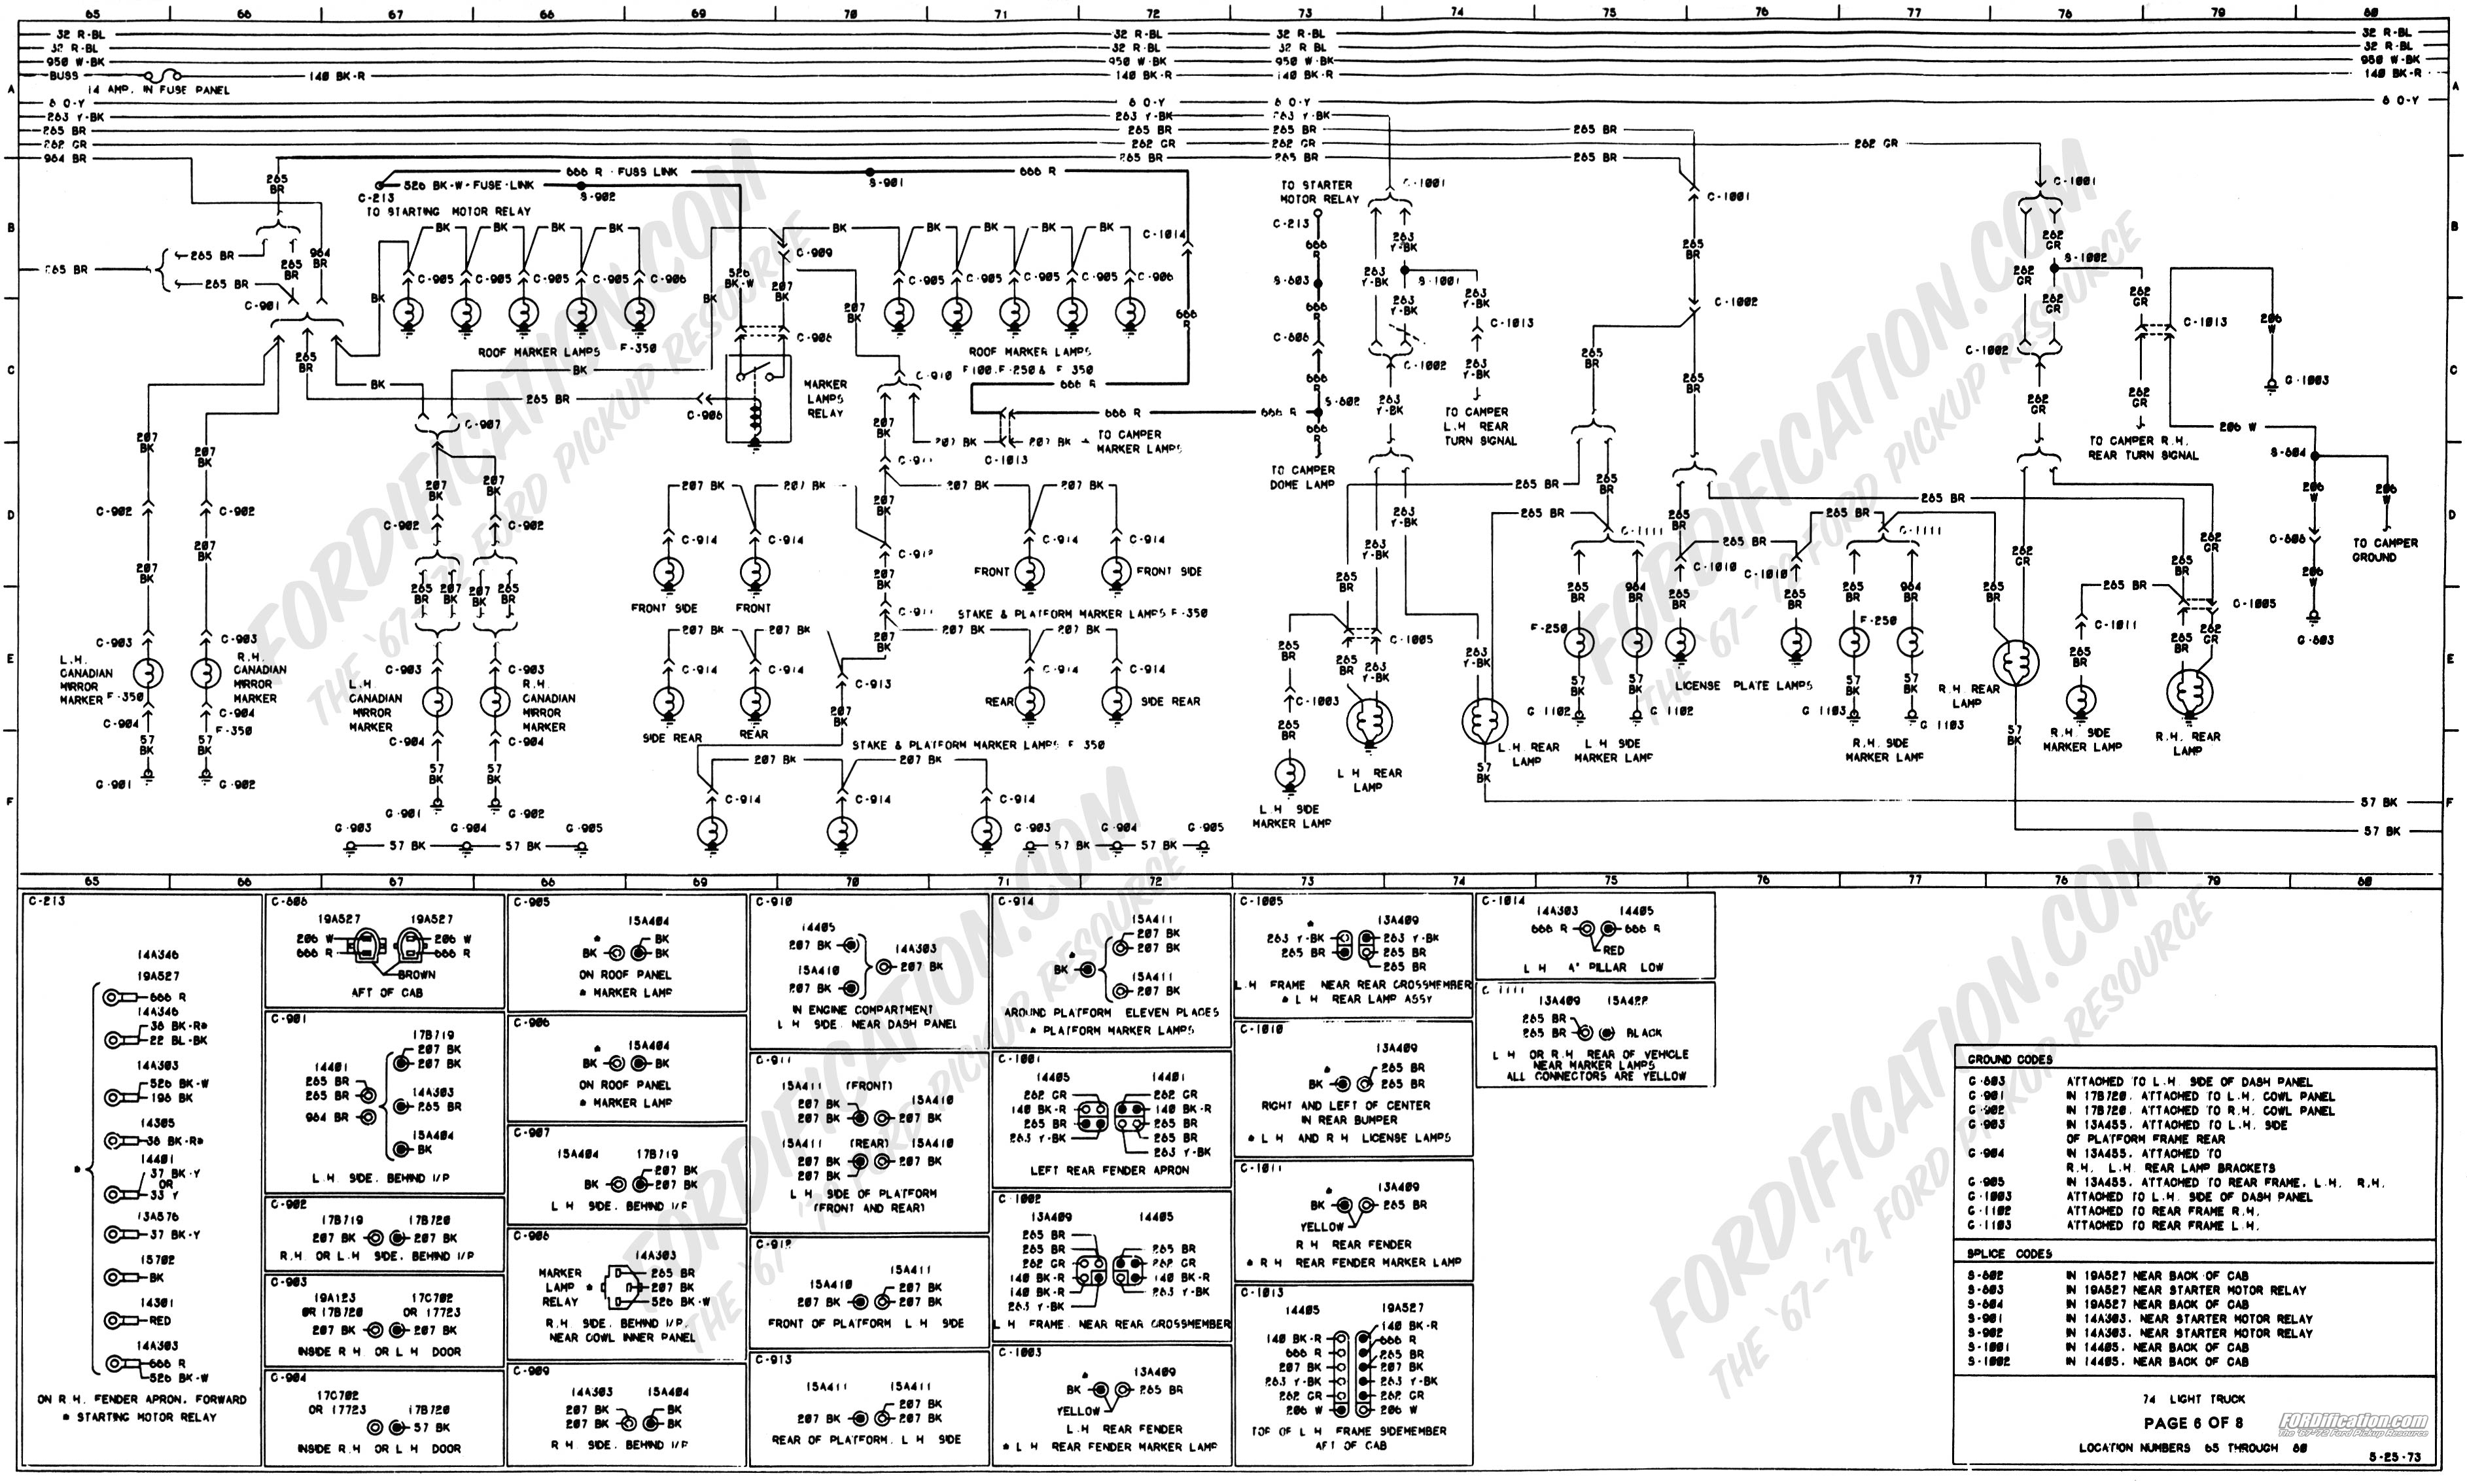 1981 Ford Bronco Wiring Diagram | Wiring Diagram - Ford F250 Stereo Wiring Diagram